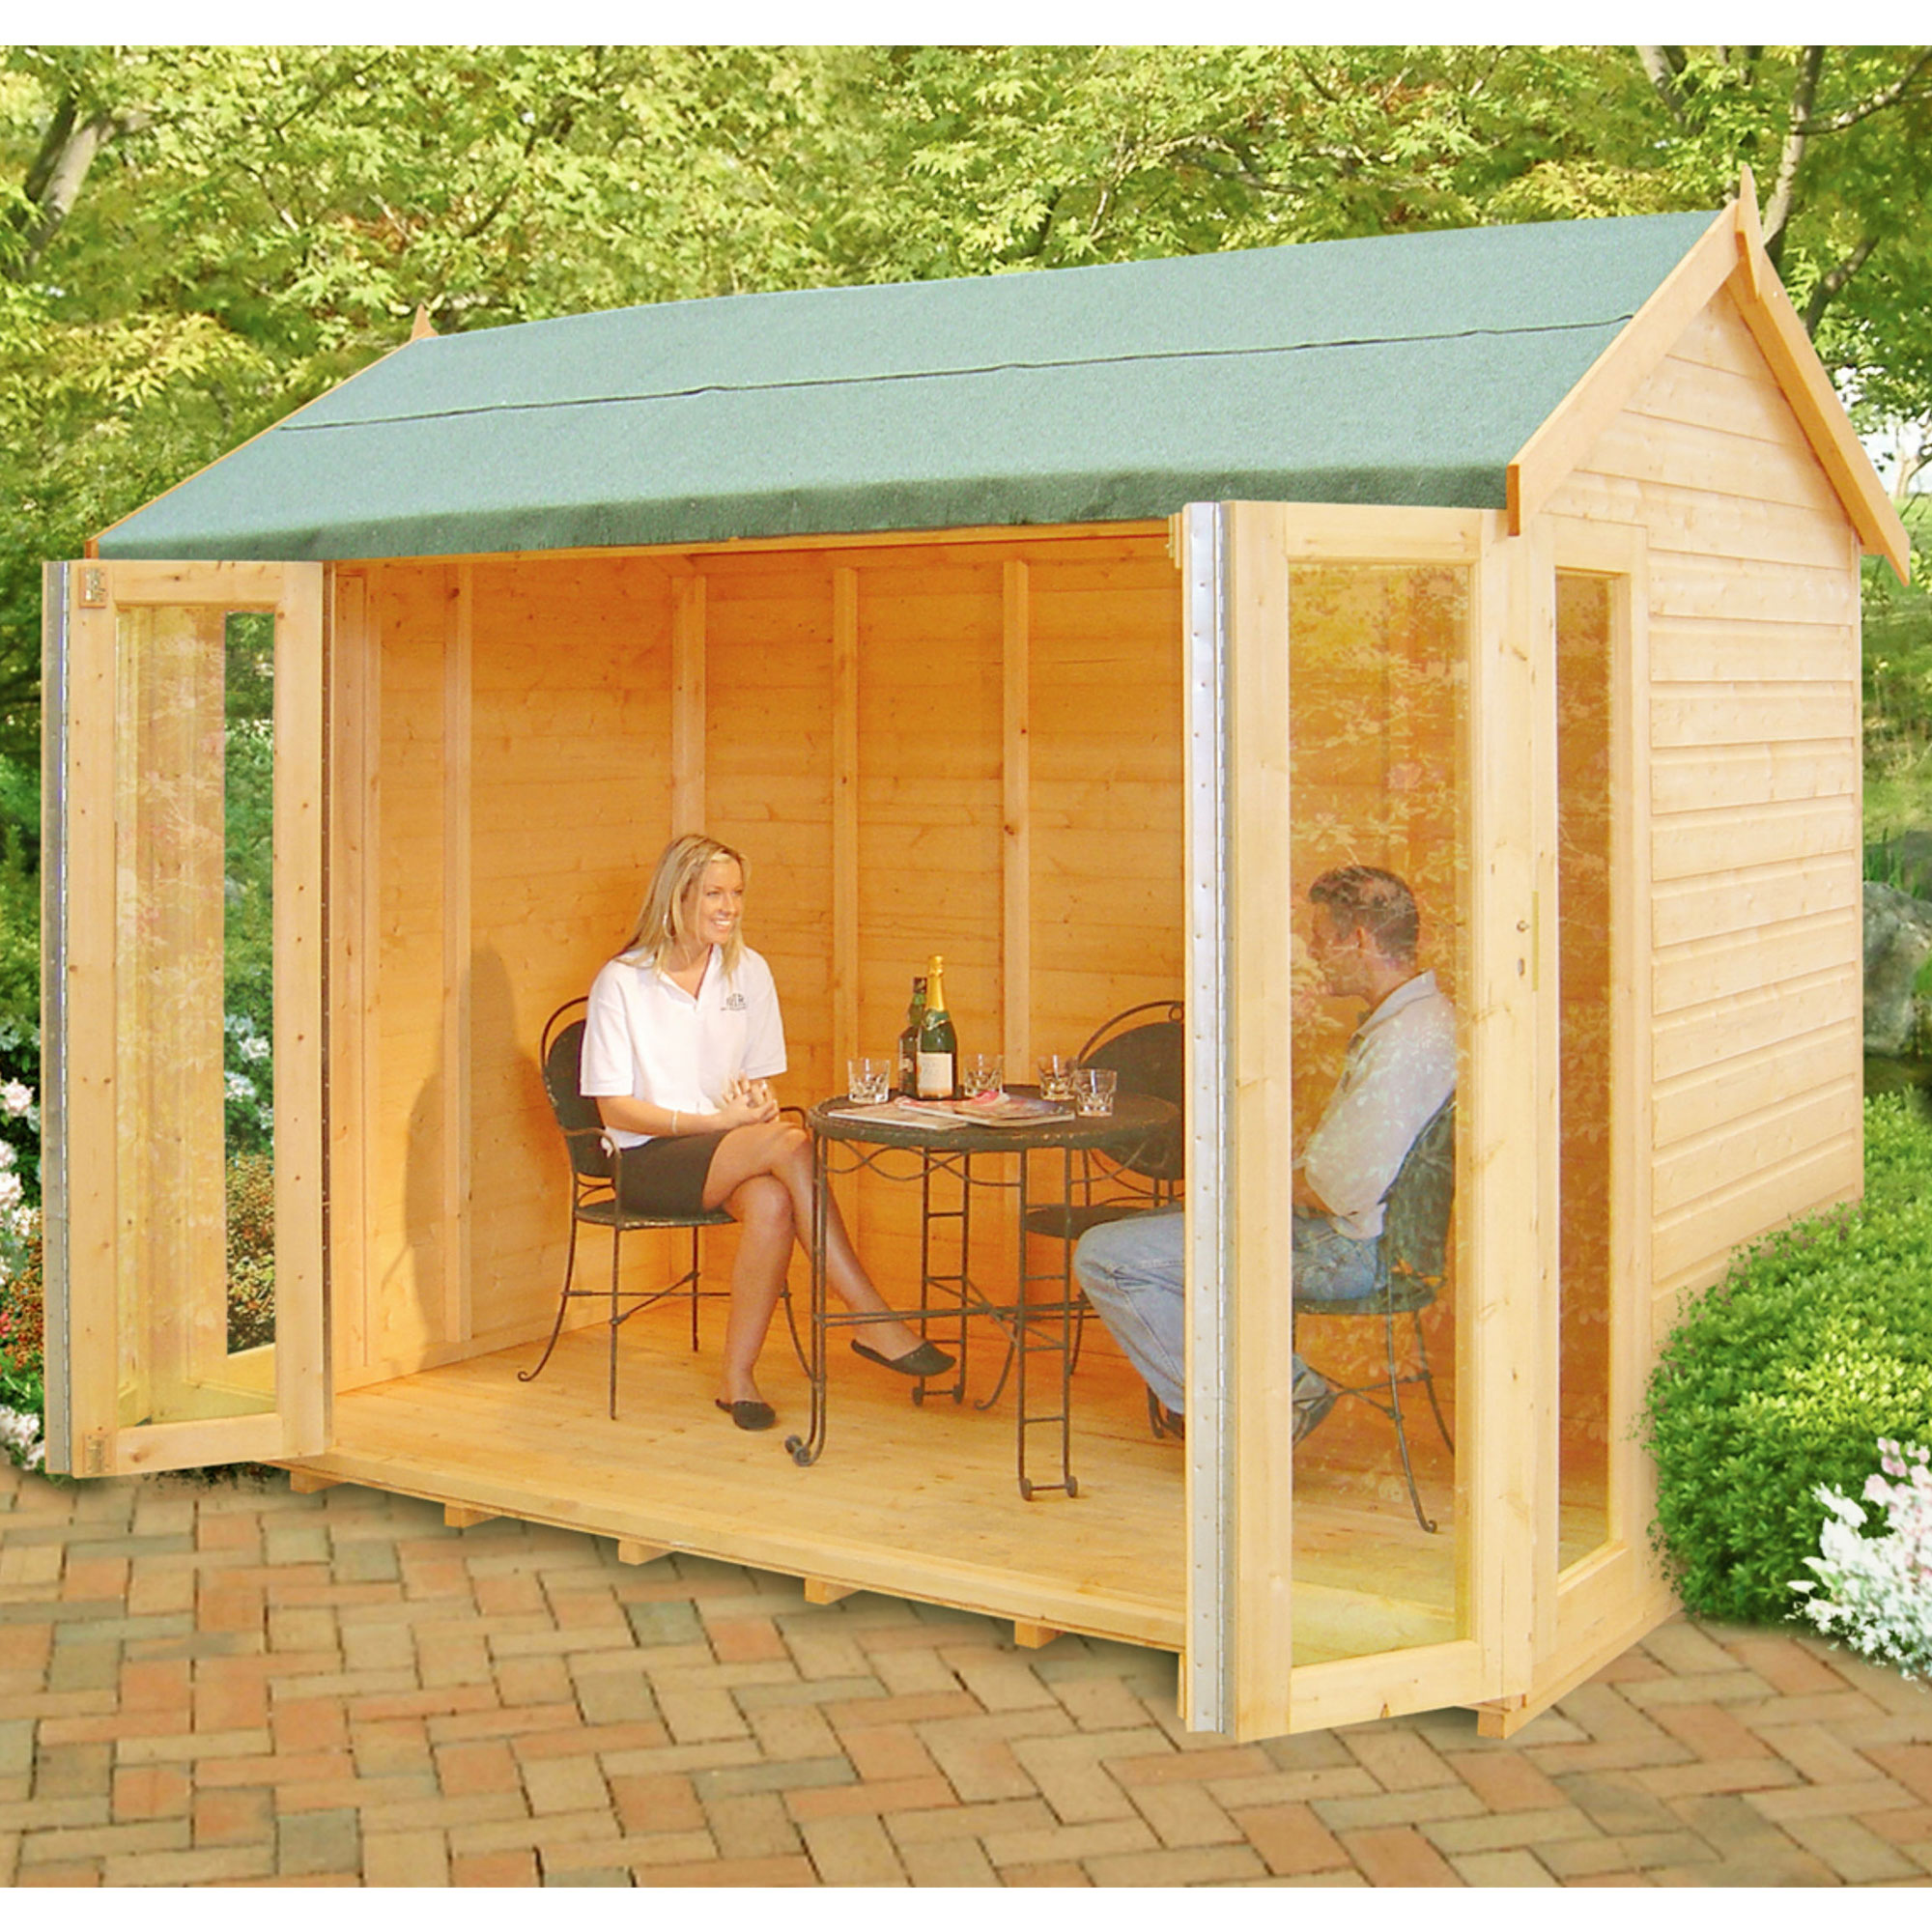 Image of 10'3 x 8'4 (3.1x2.5m) Shire Blenheim Wooden Summerhouse